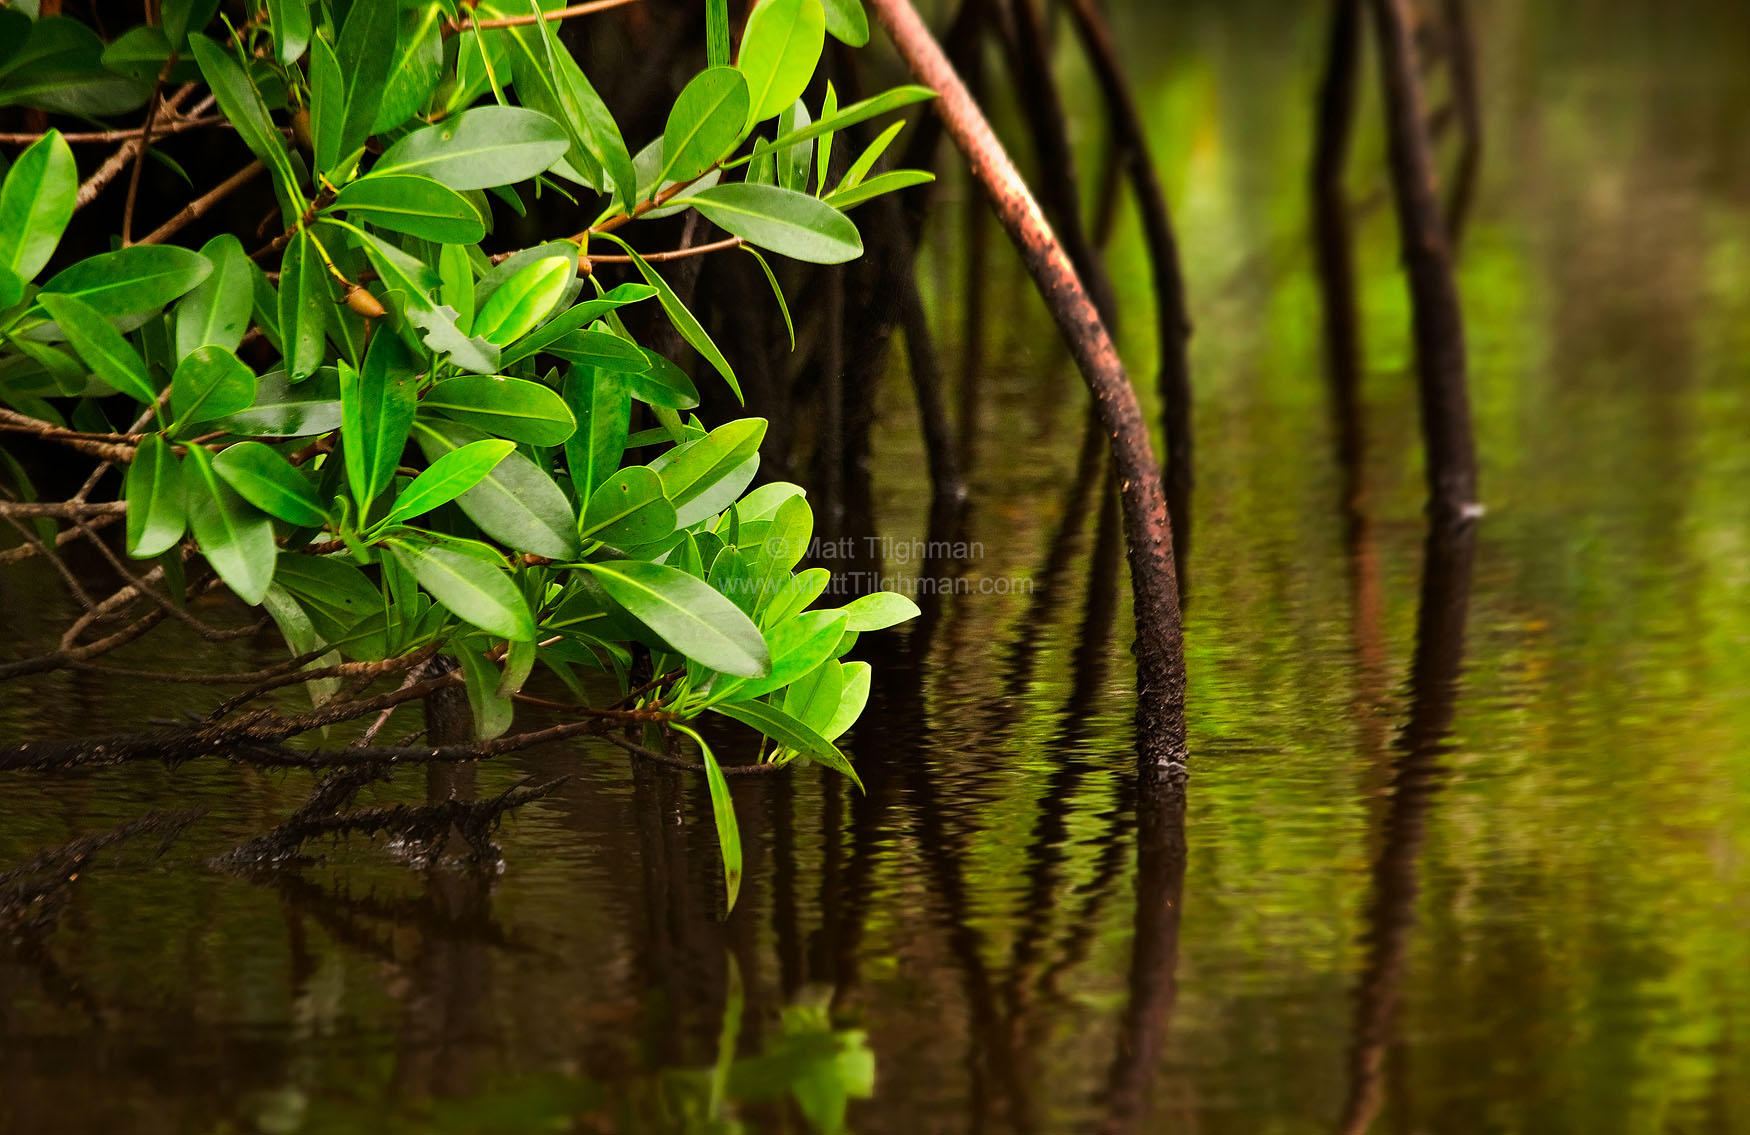 Fine art stock photograph of mangrove roots from Big Cypress Preserve. Canoeing down Halfway Creek, one passes through dense, pristine mangrove forest.